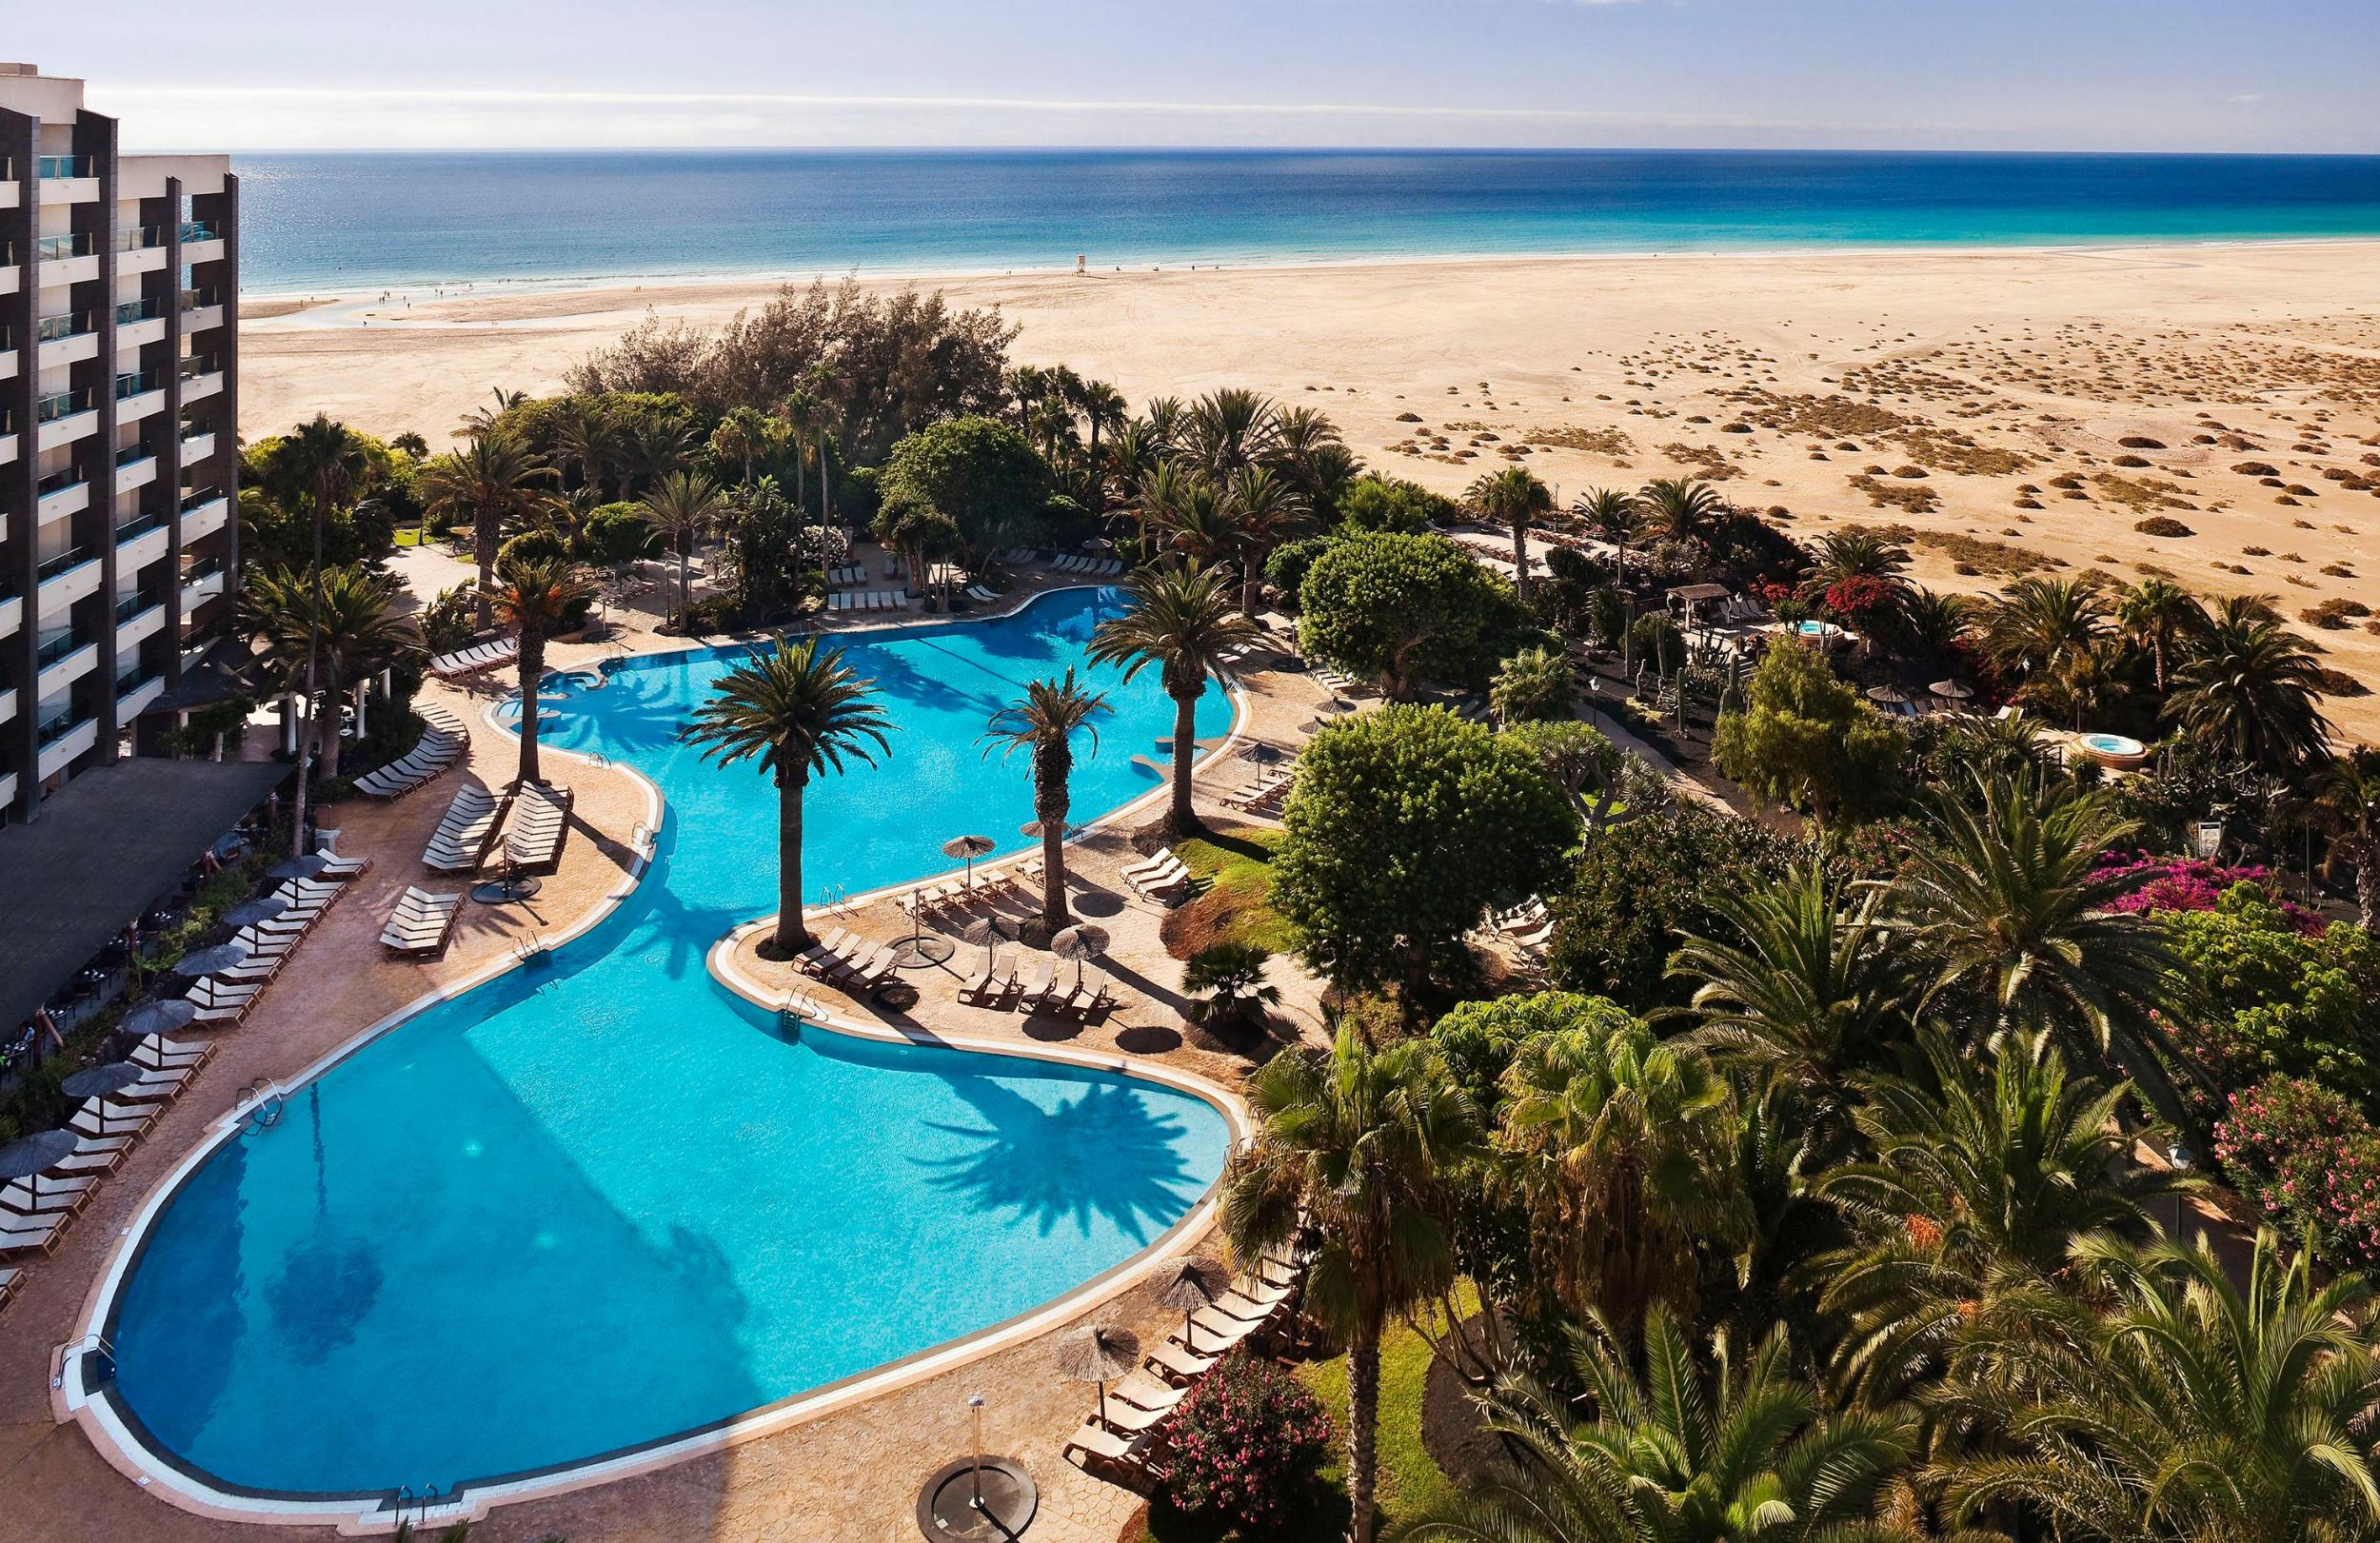 Melia Fuerteventura in Costa Calma, Fuerteventura, Canary Islands